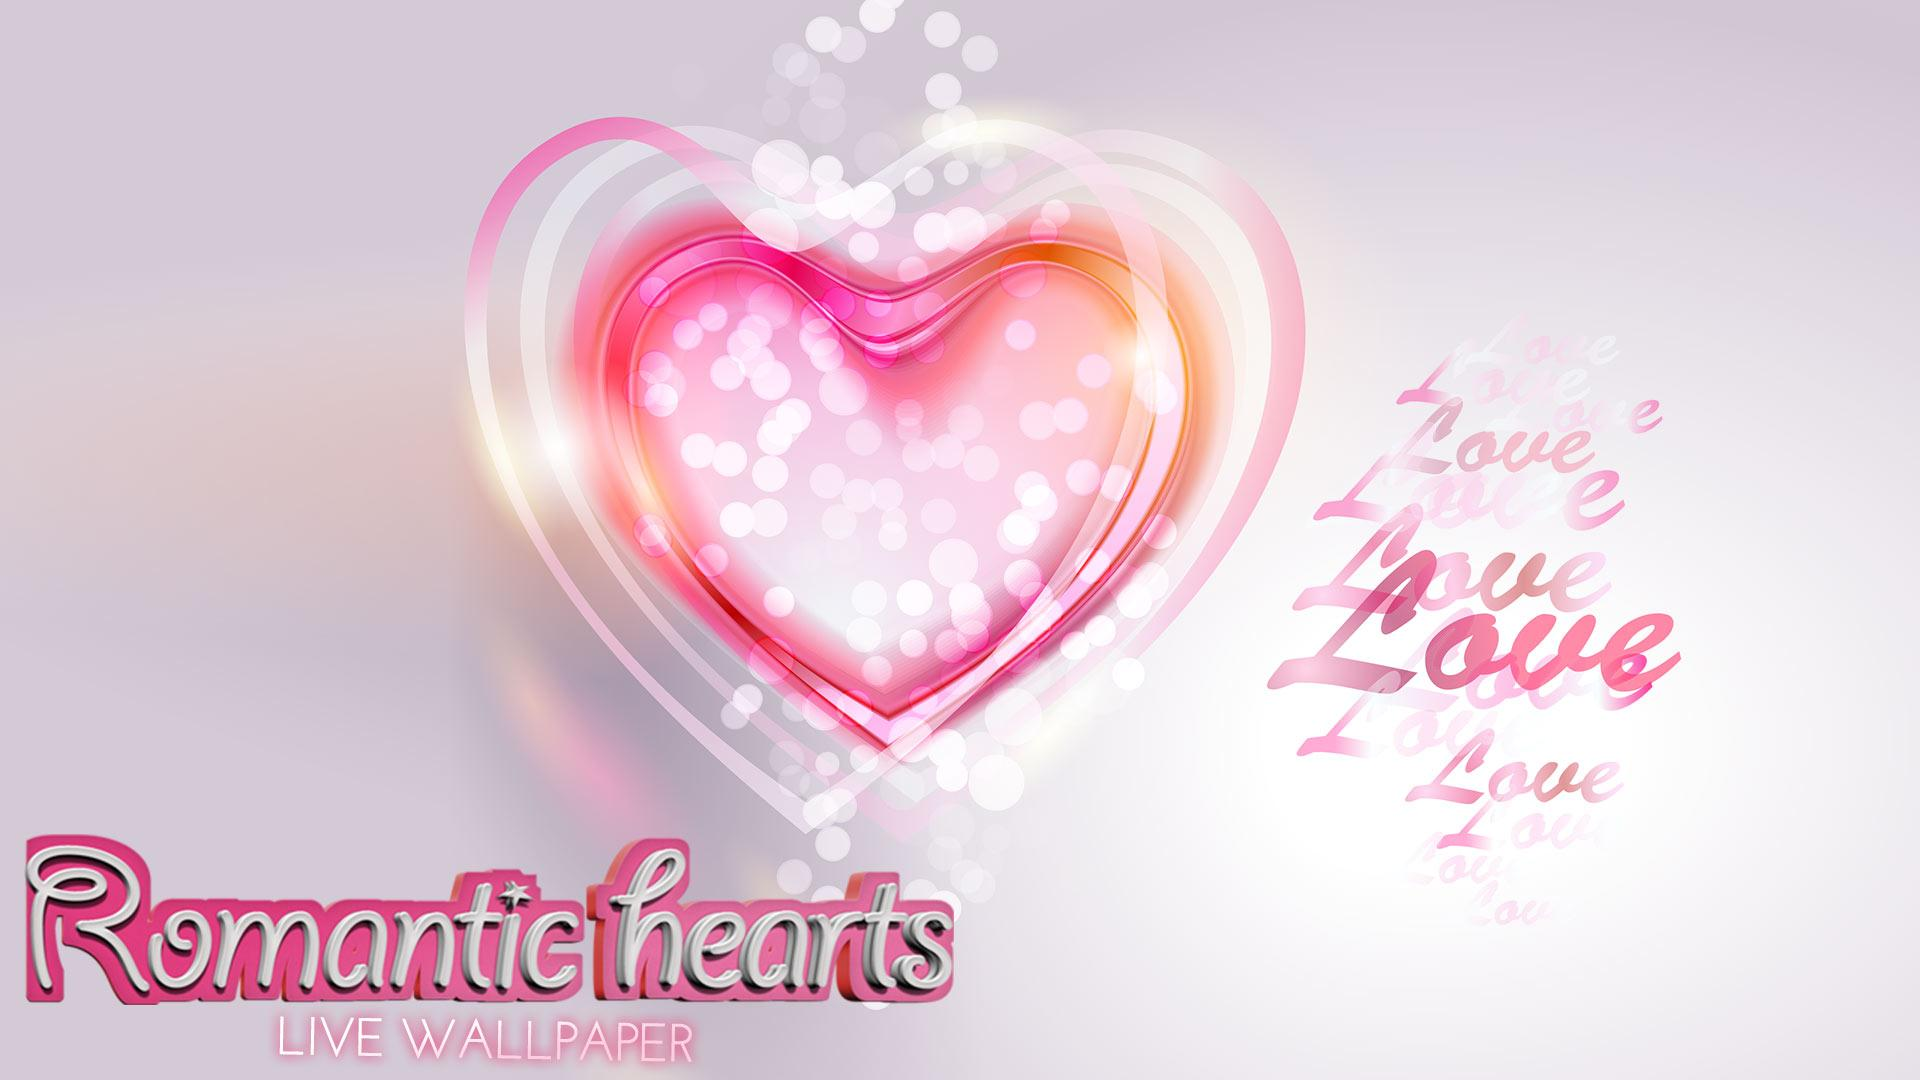 Romantic Hearts Live Wallpaper Google Play Store revenue